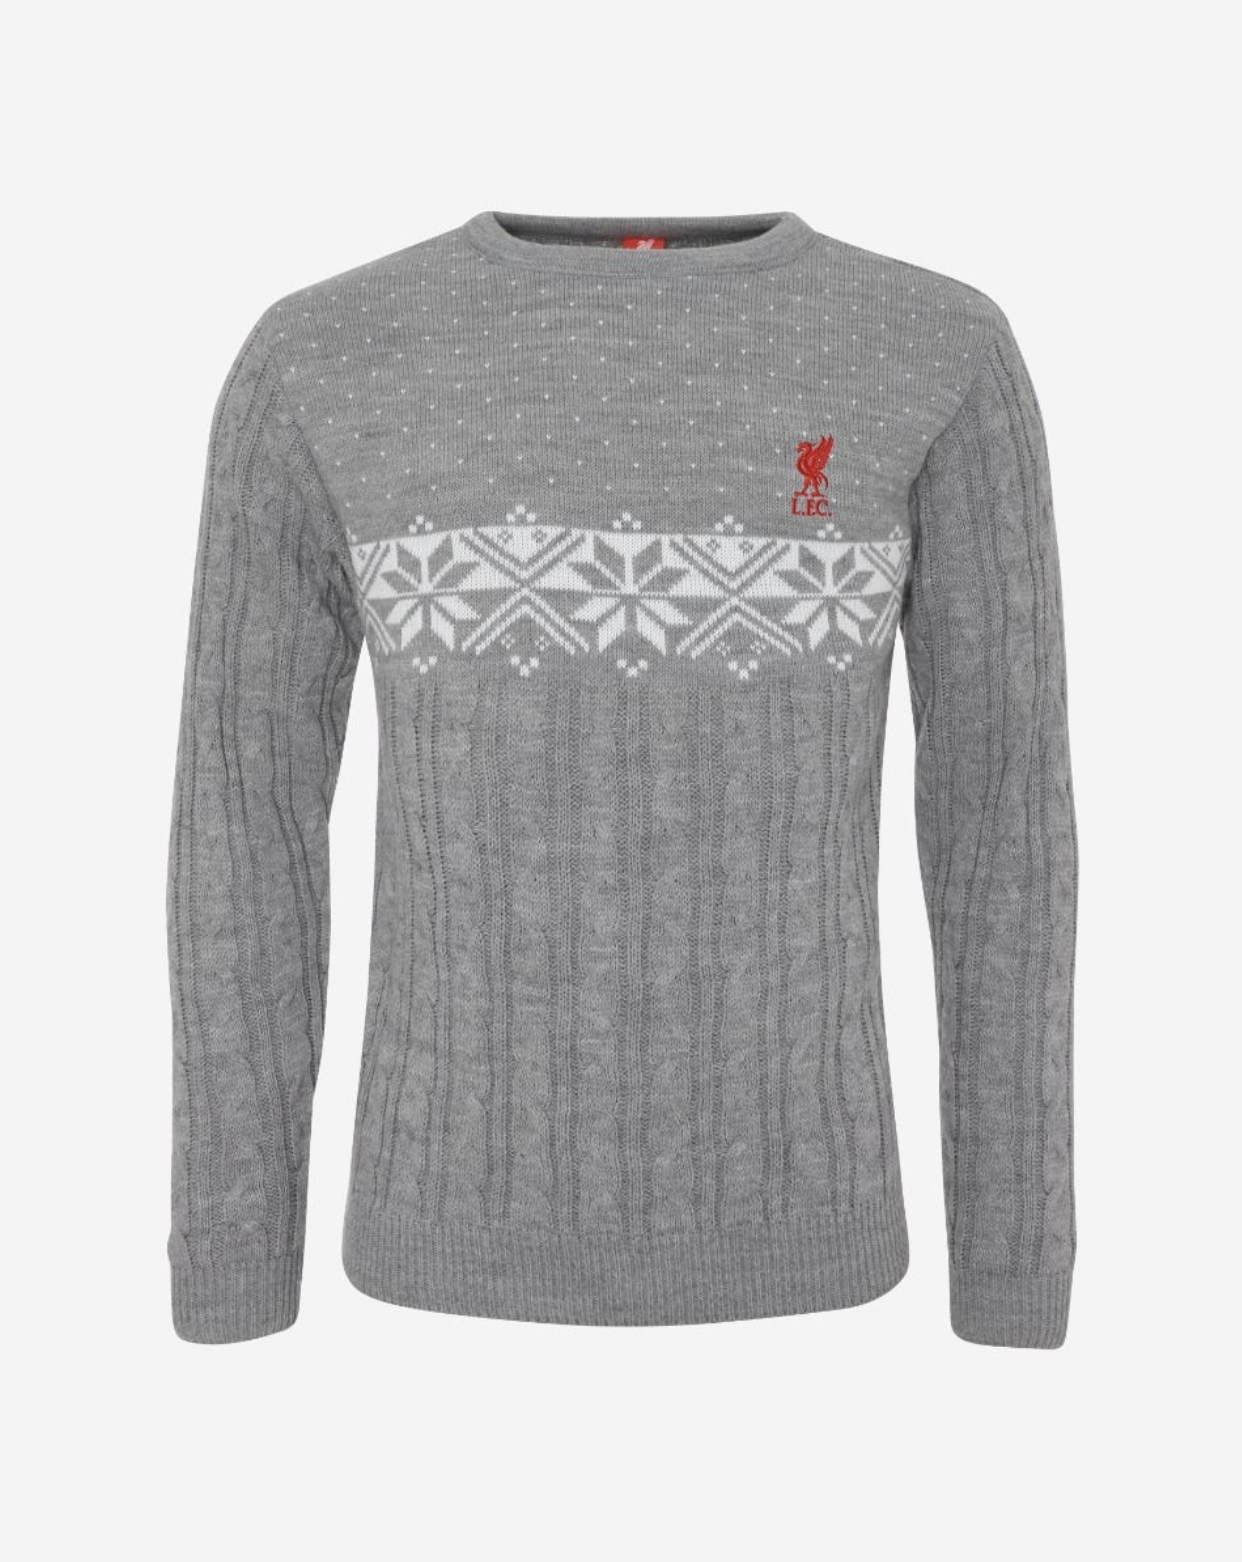 Liverpool FC Adults Grey Cable Knit Crest Sweater